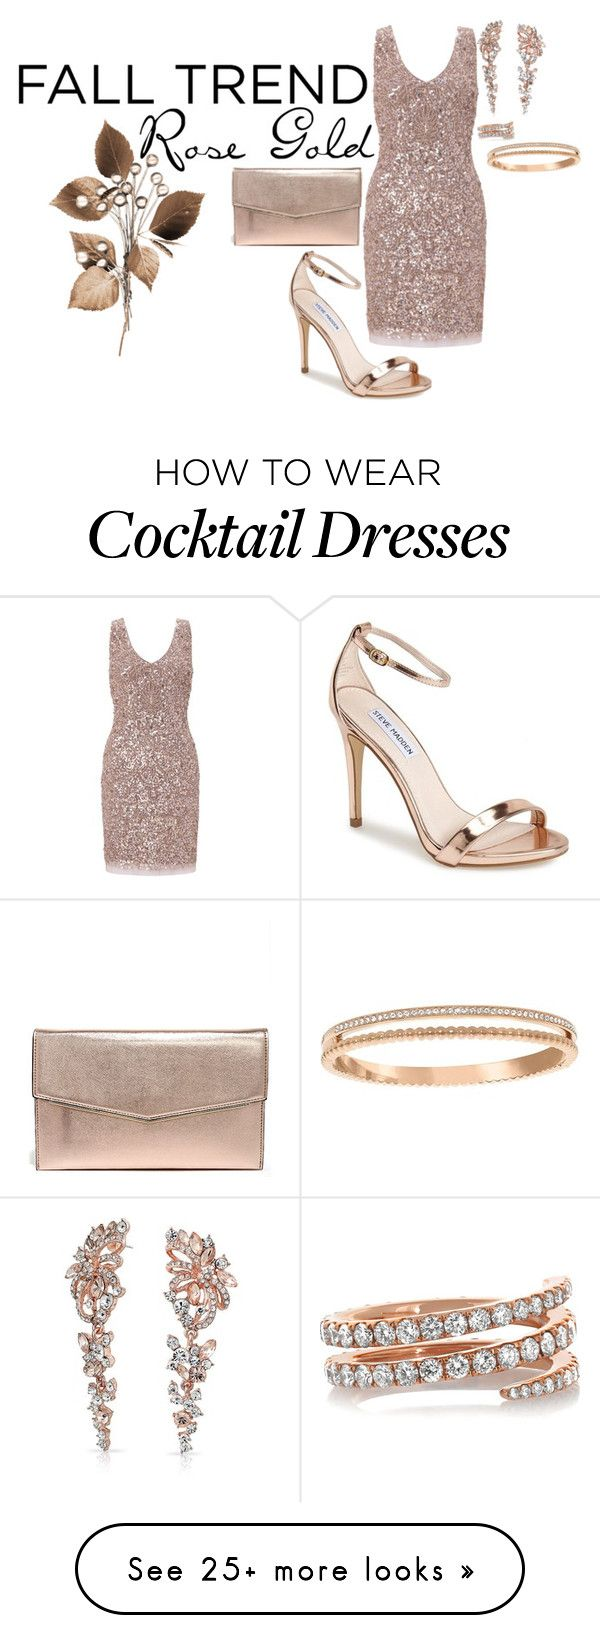 """Rose Gold"" by jmariel09 on Polyvore featuring Aidan Mattox, Steve Madden, Anita Ko, Bling Jewelry, Swarovski and rosegold"